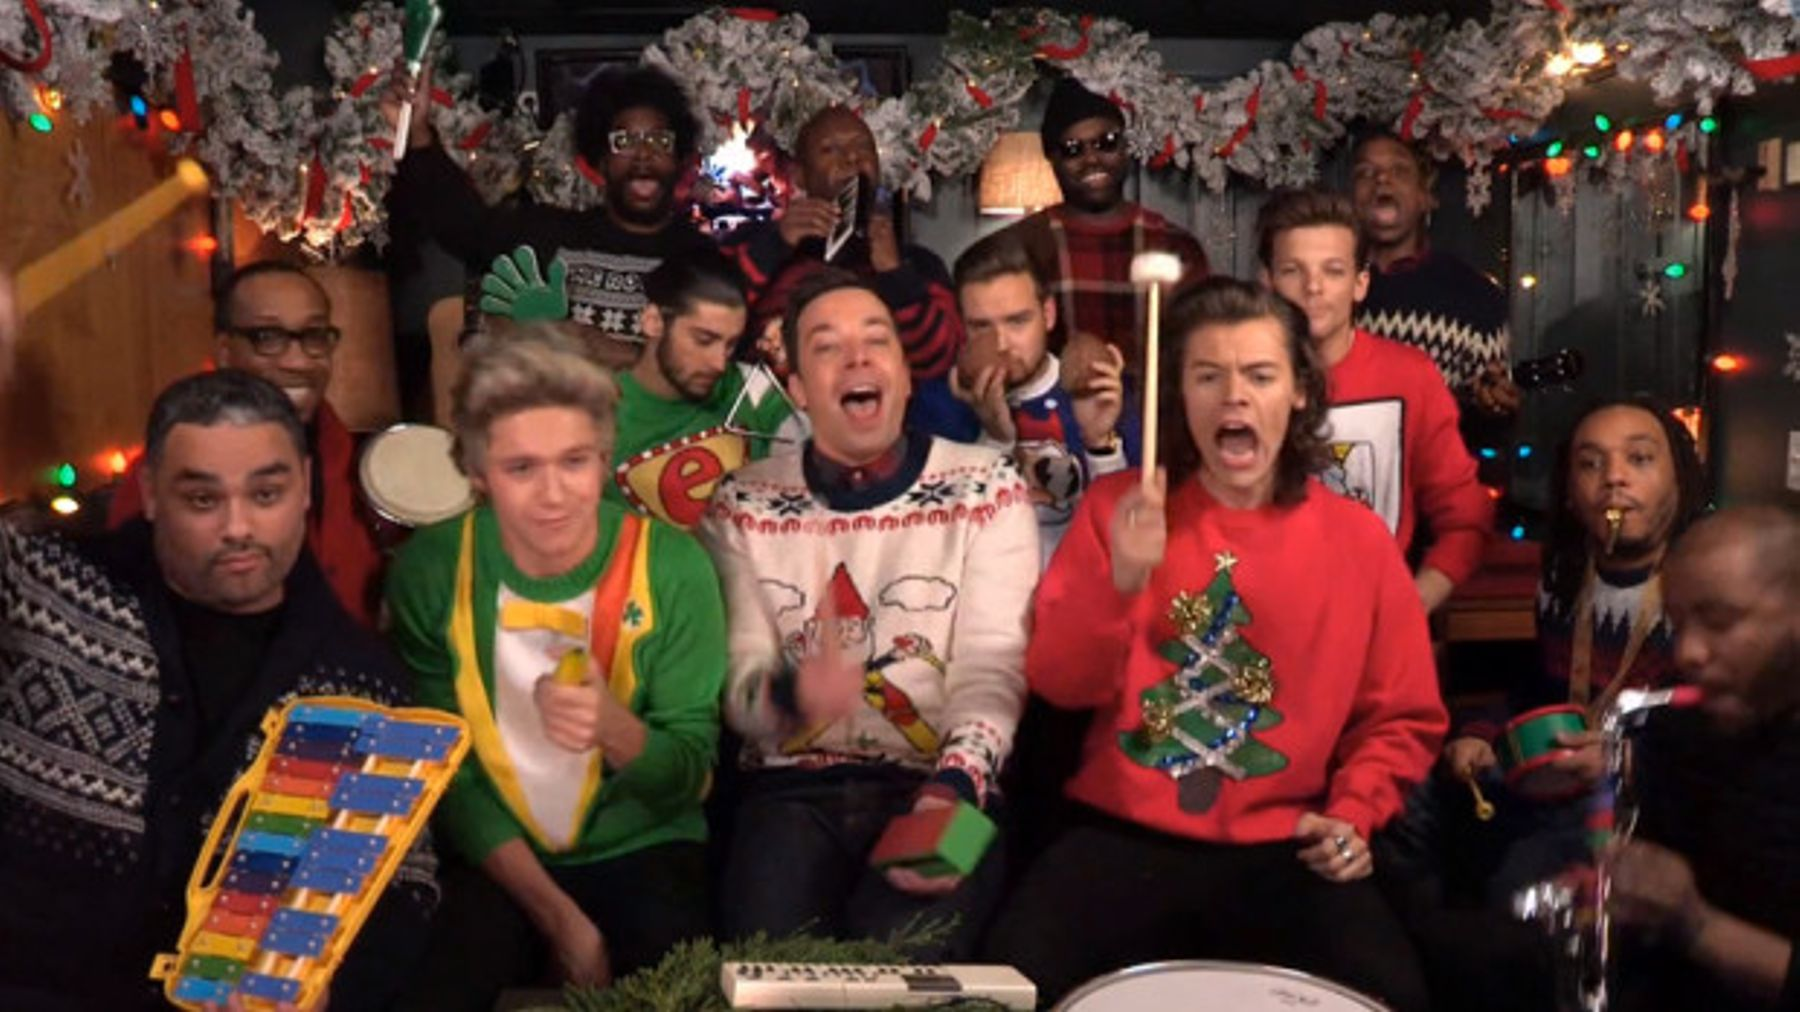 Jimmy Fallon Christmas.One Direction On Jimmy Fallon In Christmas Jumpers We Just